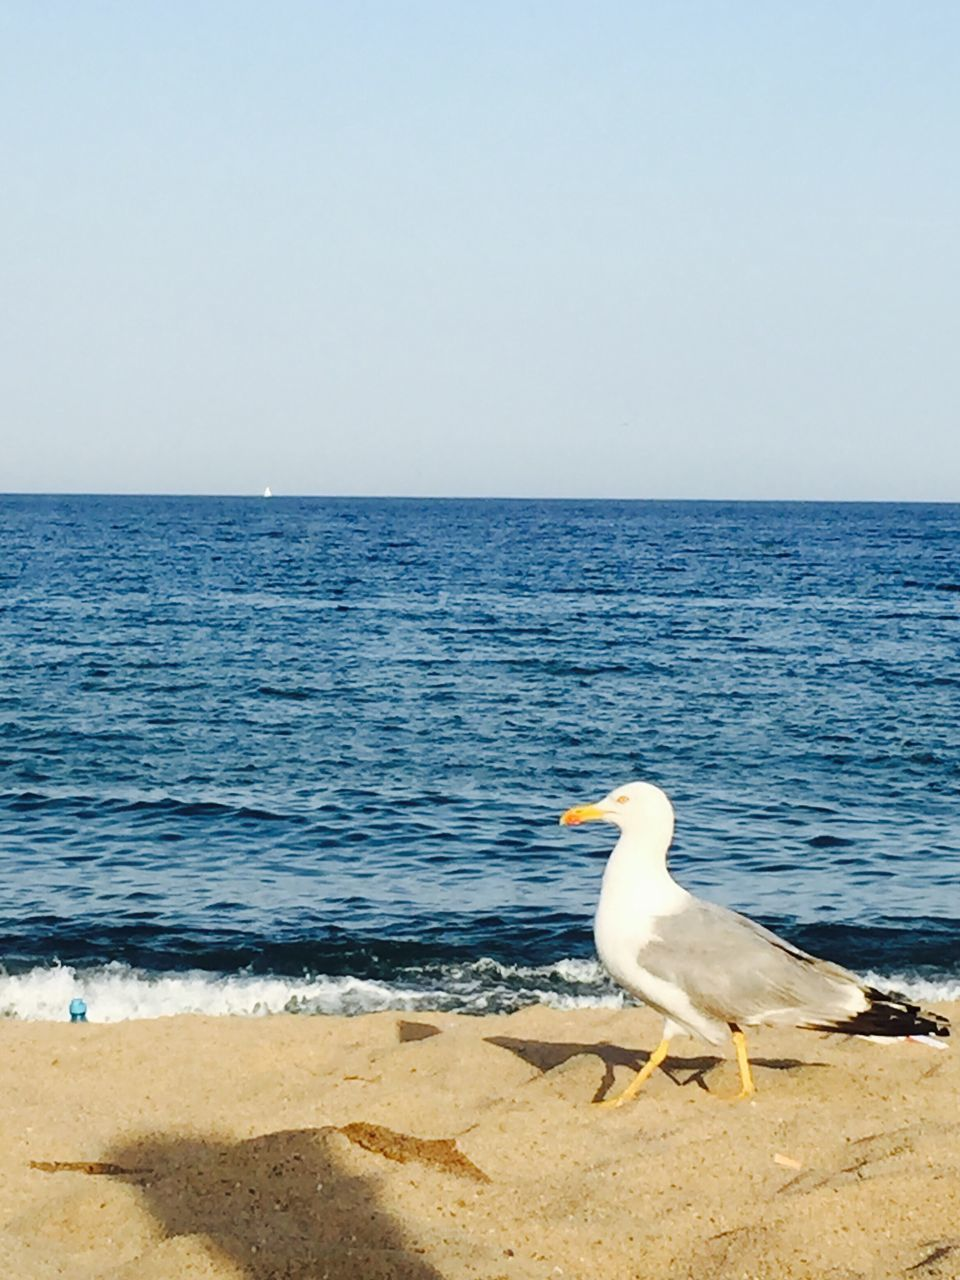 sea, horizon over water, water, nature, scenics, beach, beauty in nature, one animal, clear sky, copy space, animals in the wild, animal themes, bird, tranquil scene, seagull, outdoors, day, tranquility, no people, sand, sky, perching